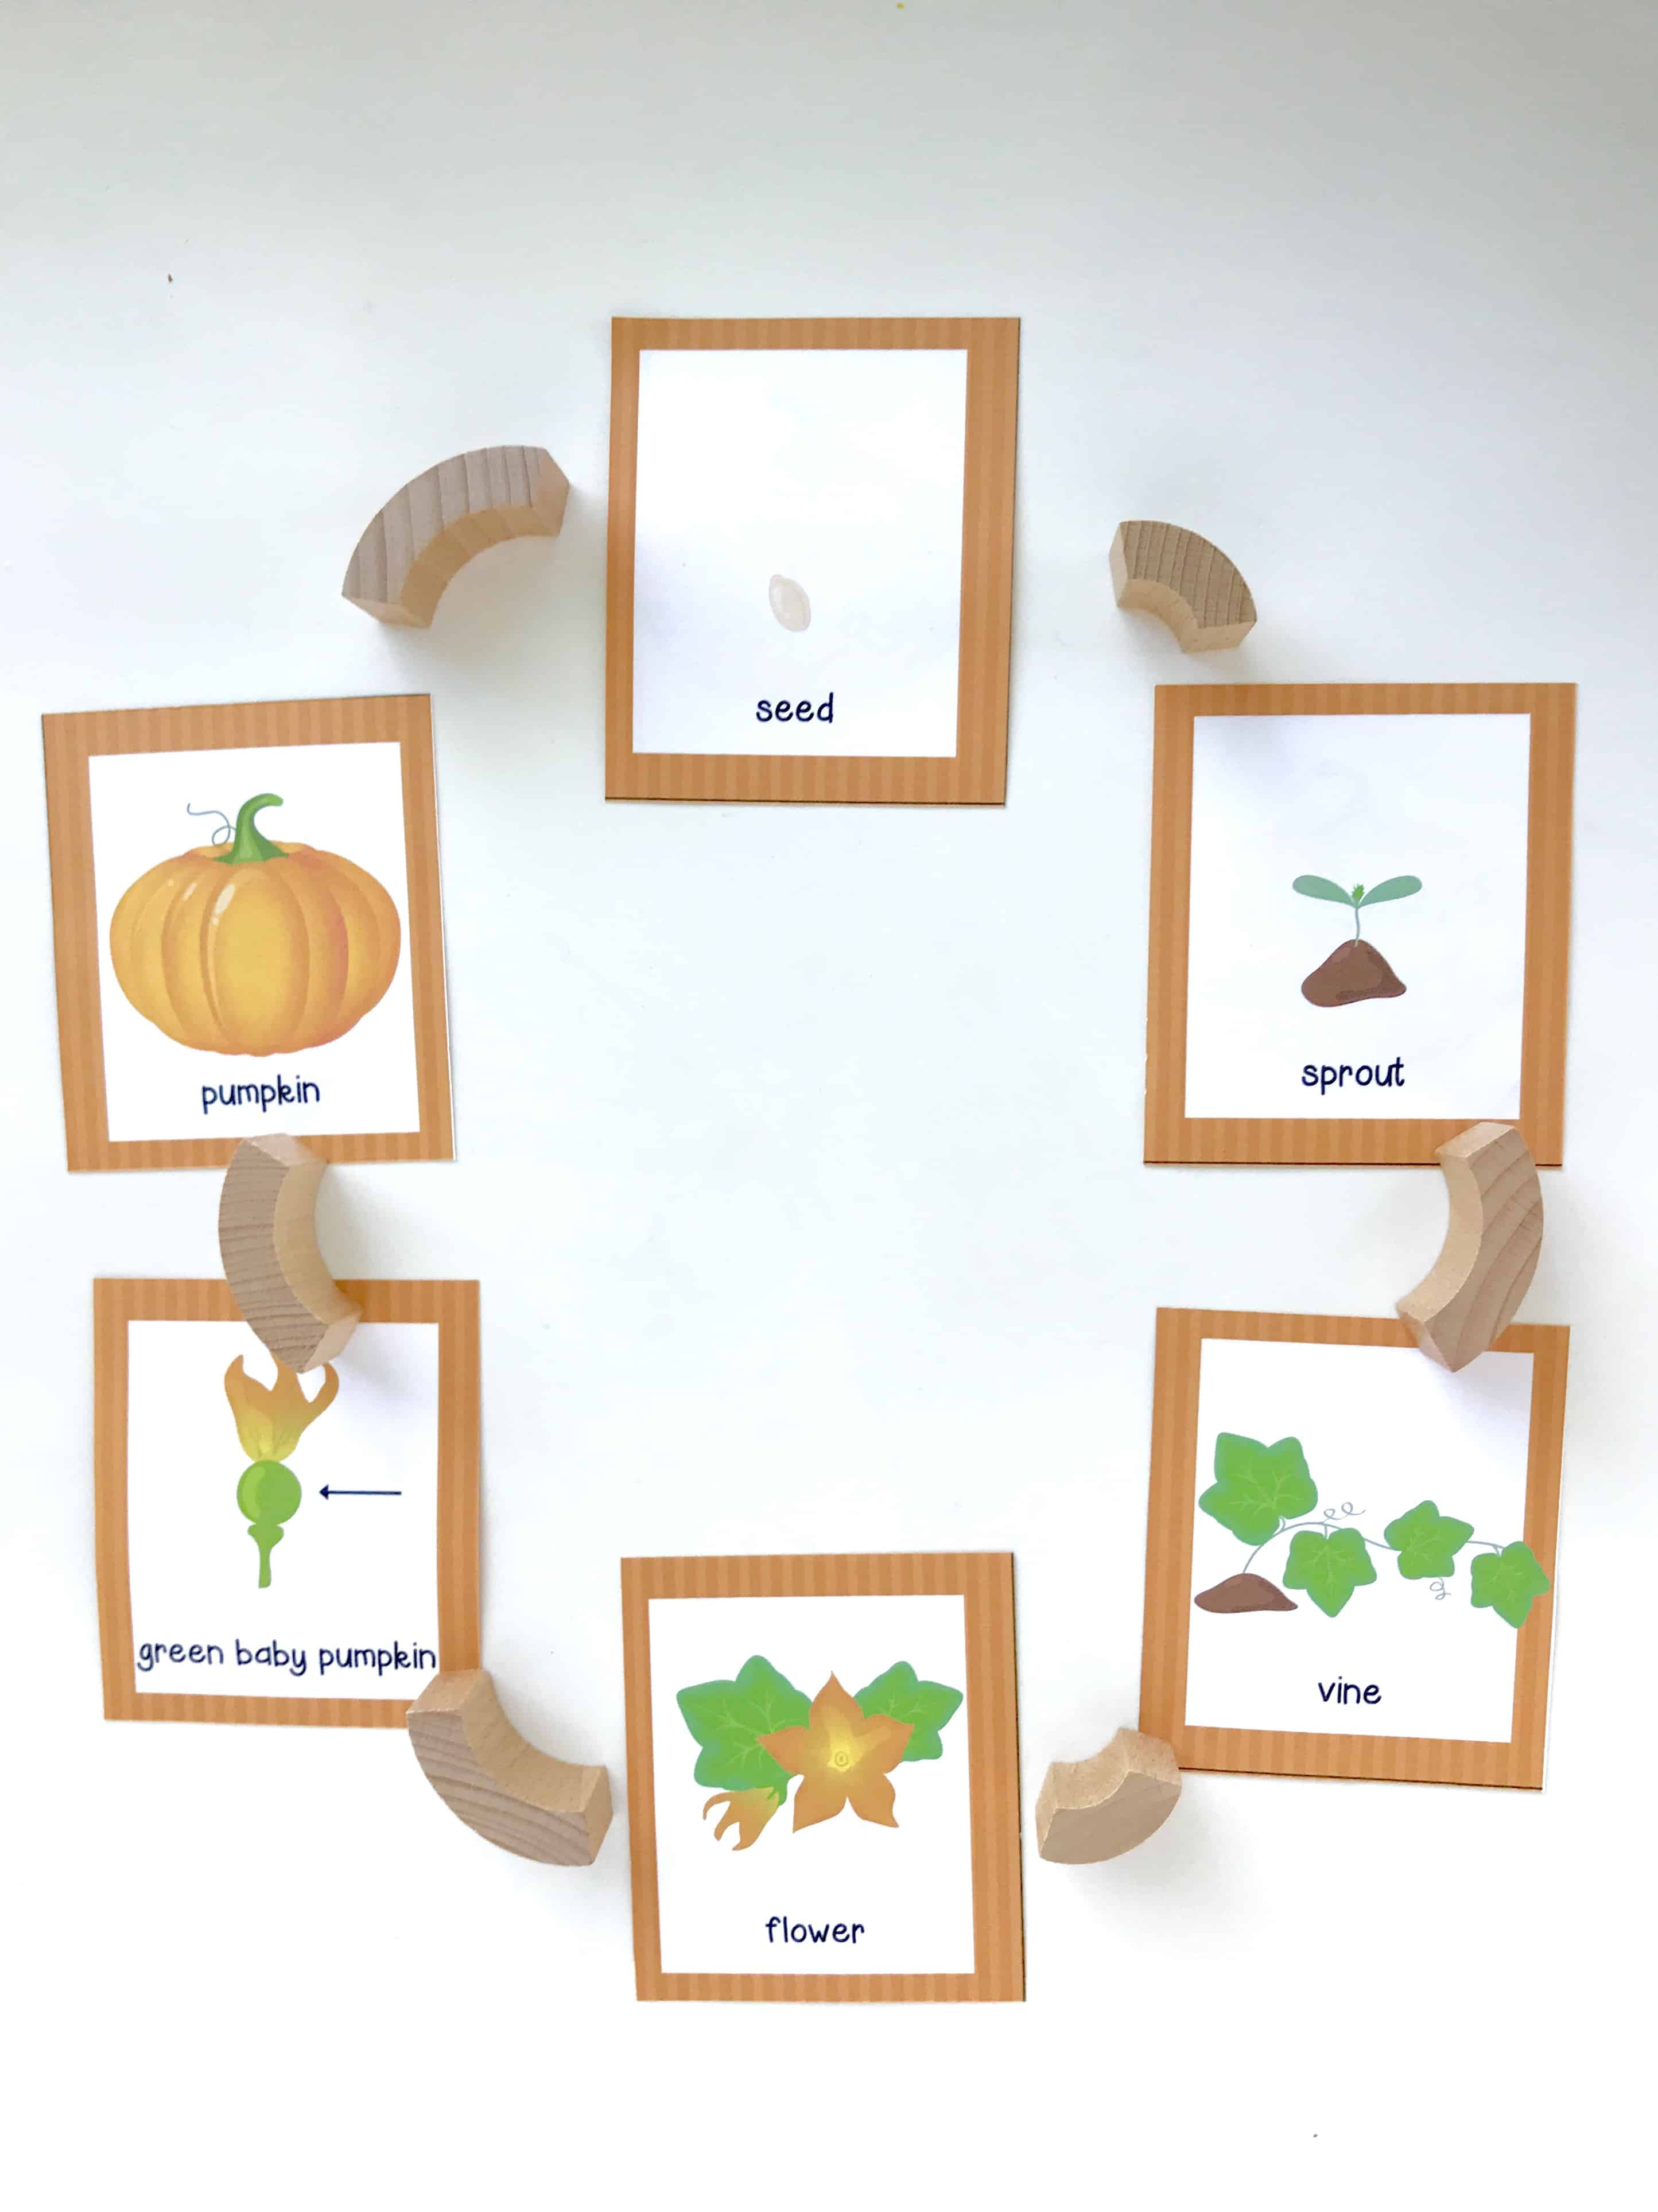 photograph regarding Pumpkin Life Cycle Printable known as Pumpkin Daily life Cycle Printable Memory Activity - I Can Prepare My Baby!